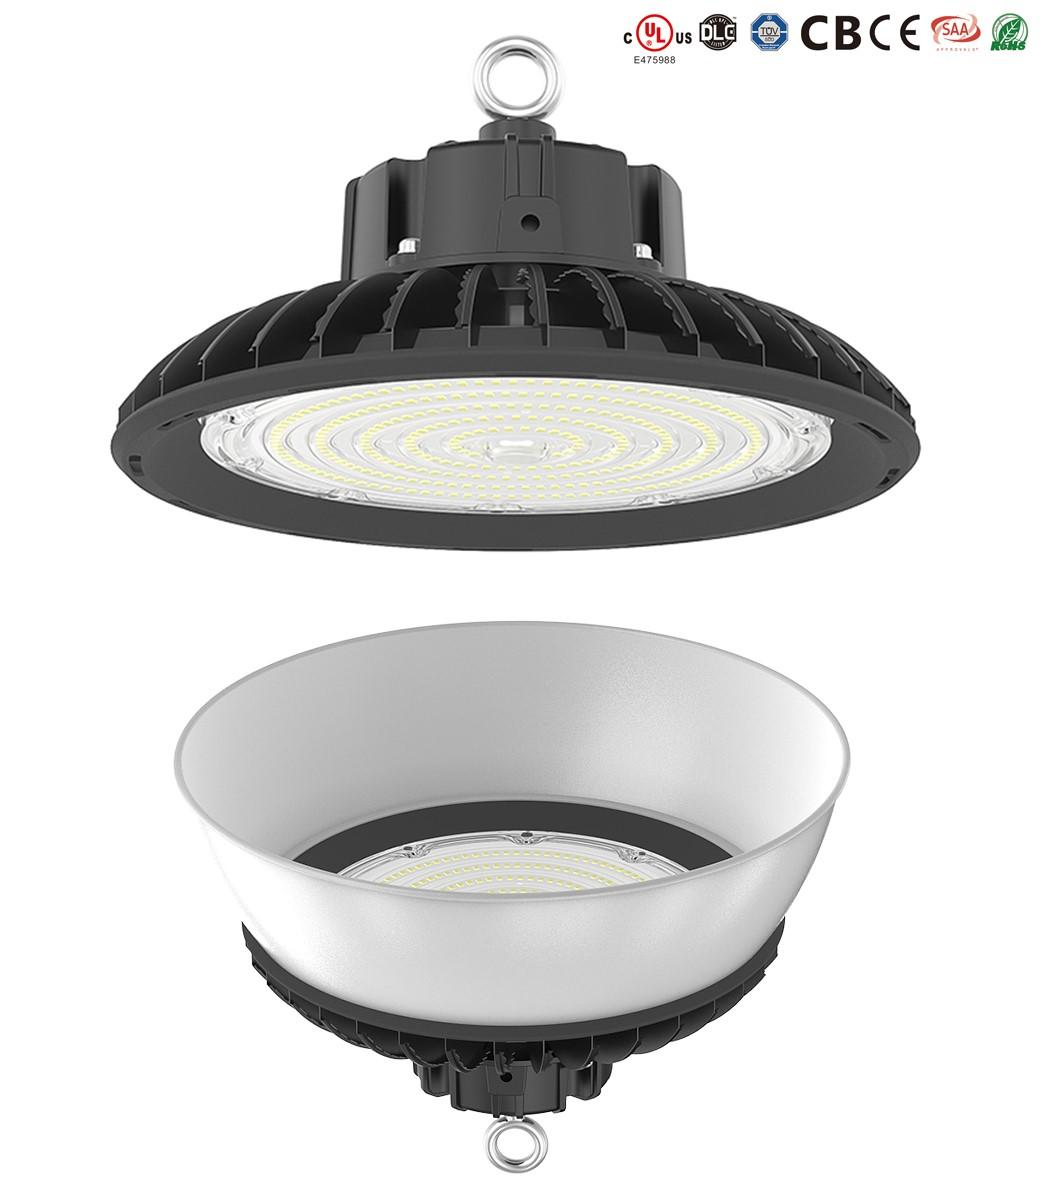 Latest high bay lighting manufacturers reflectors Supply for factories